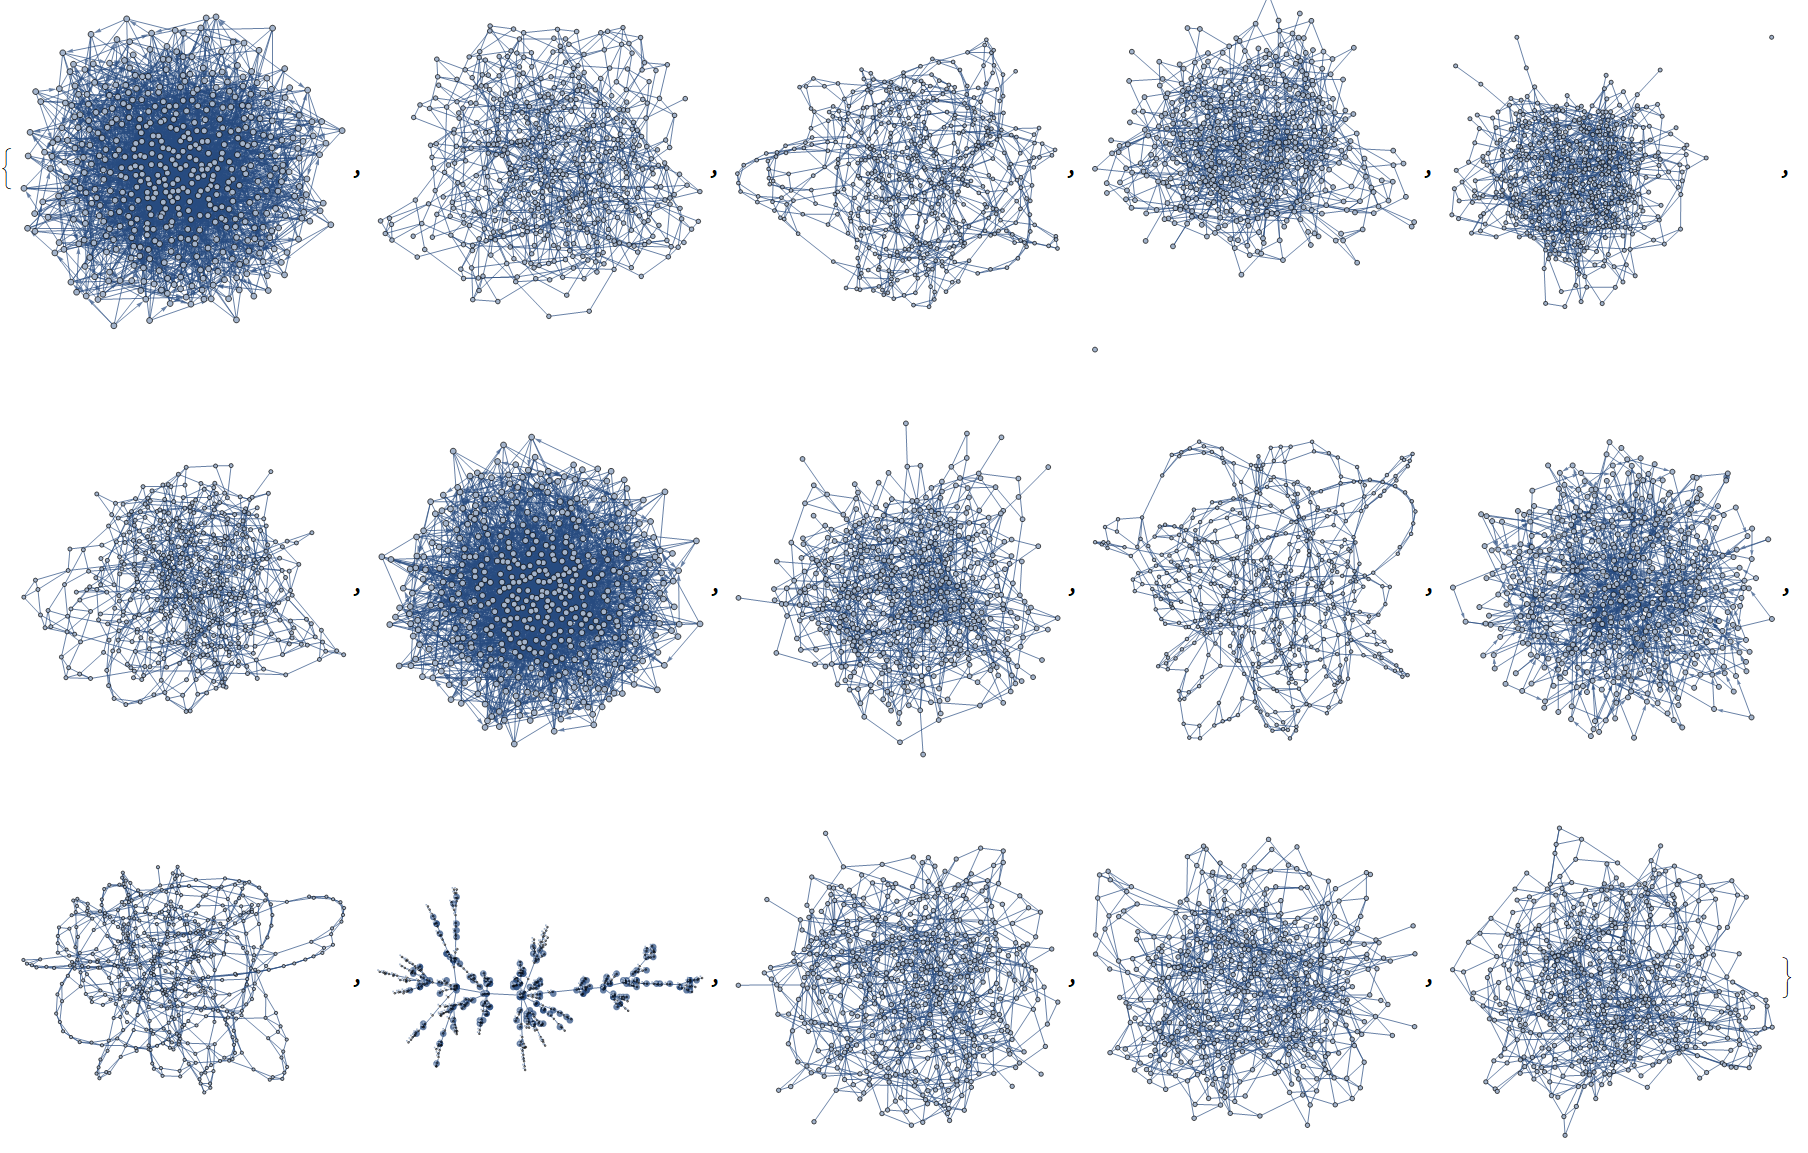 Covid-19 transmission in a social network